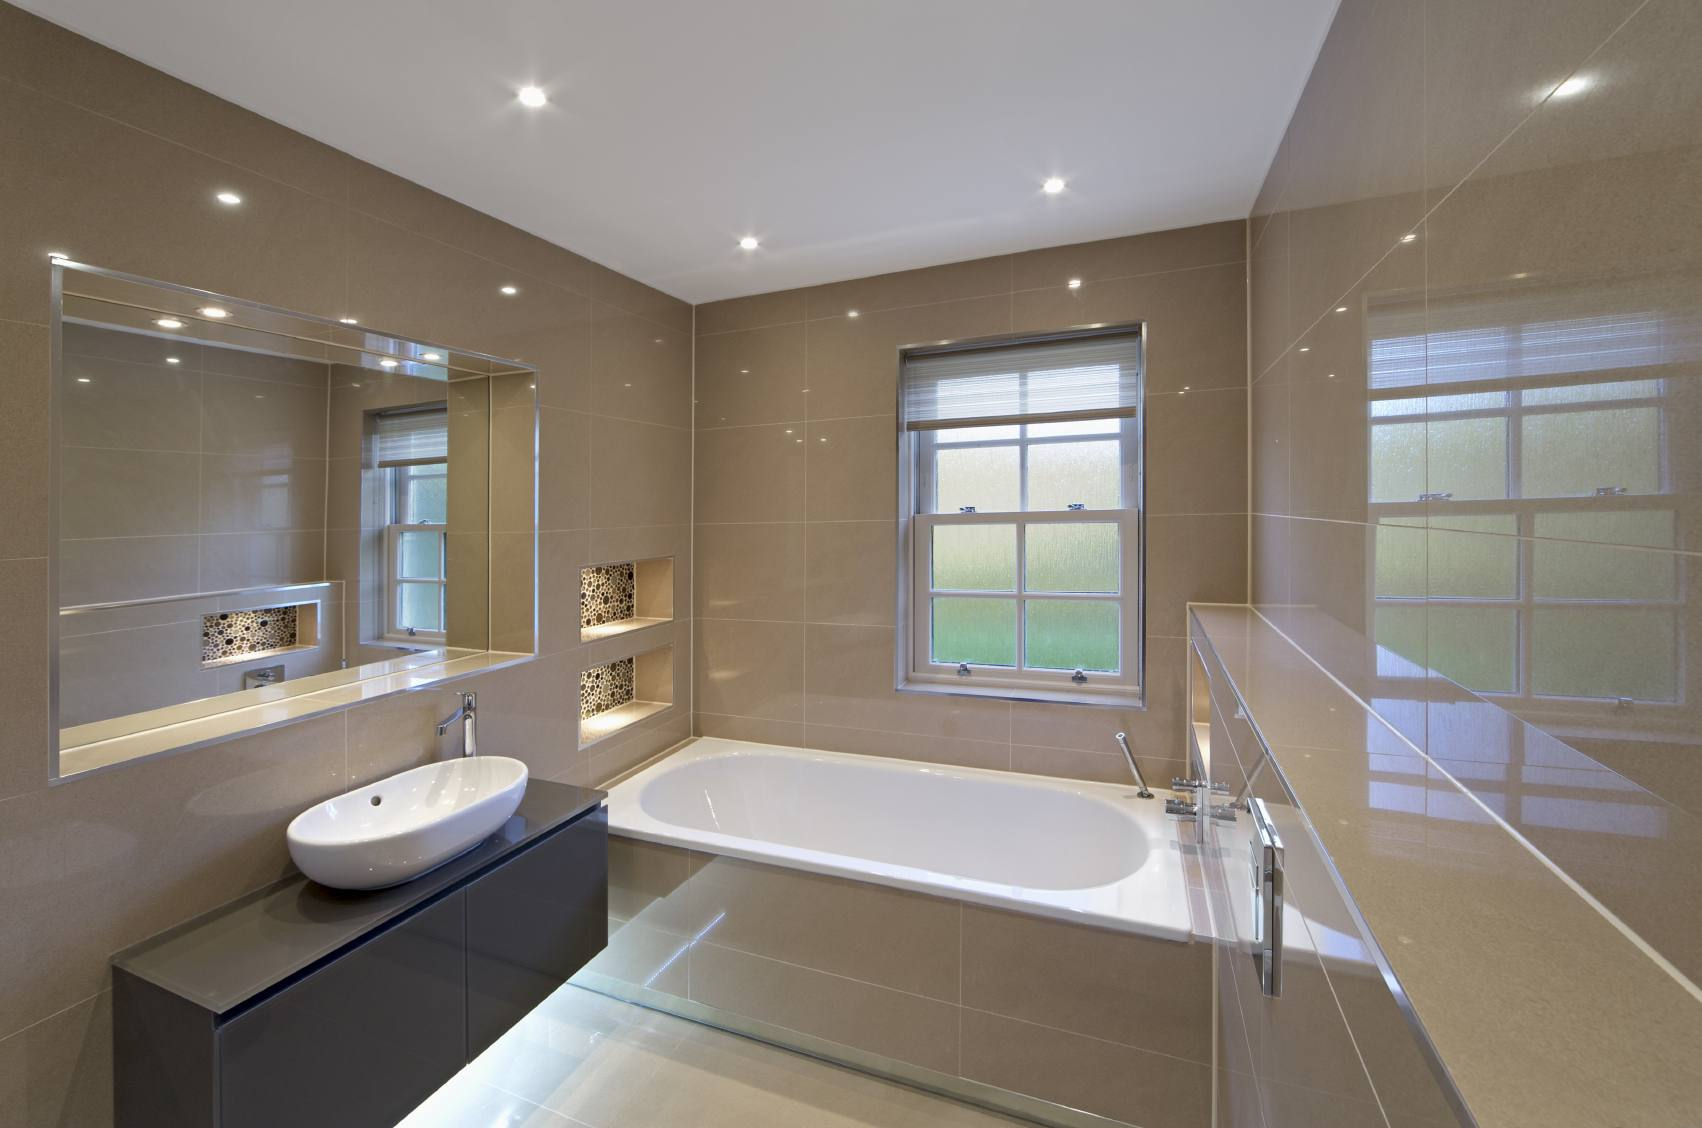 Full Size of Bathroom Design:bathroom Shower Ideas Showers Gallery  Installation Sets Seats Diy Faucets ...